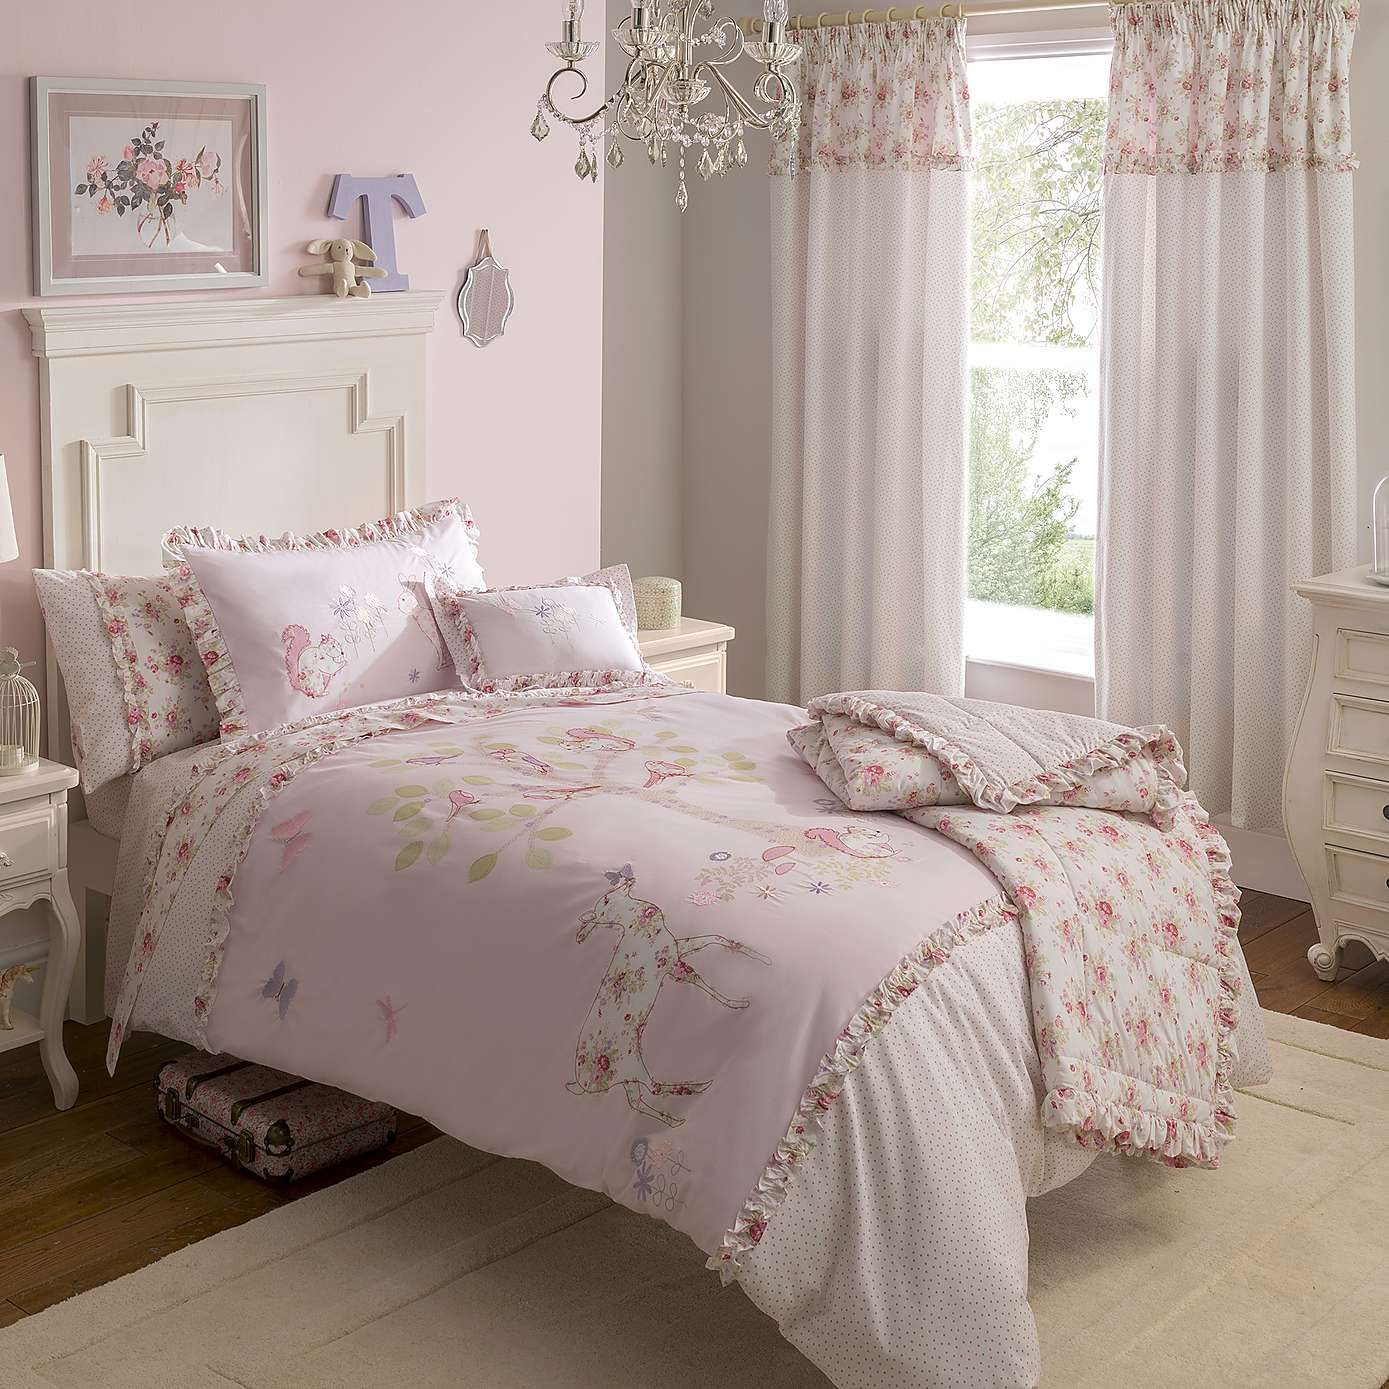 Dorma Woodland Pink Duvet Cover and Pillowcase Set